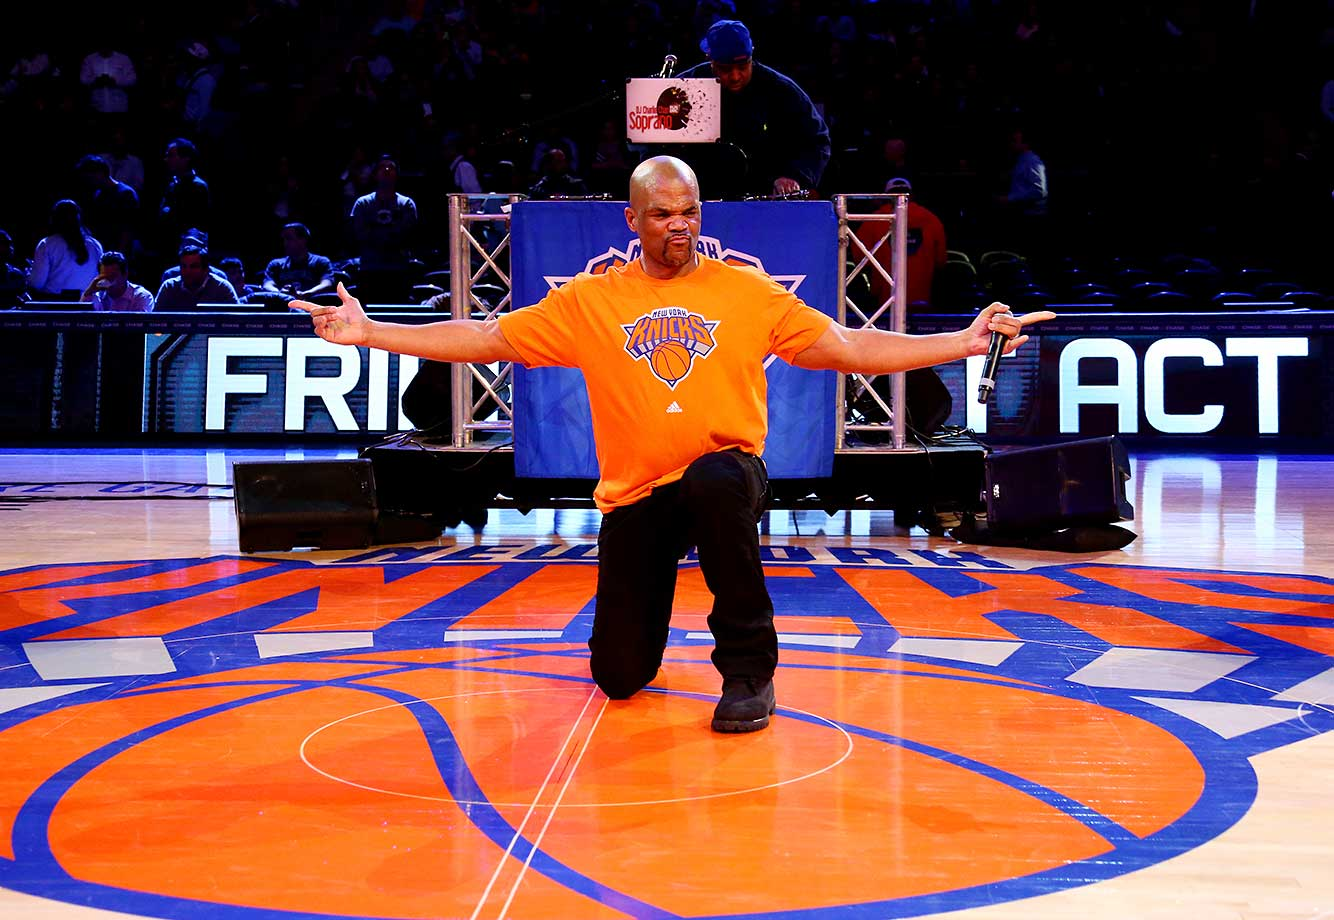 Darryl McDaniels of Run-D.M.C. performs during halftime of the game between the New York Knicks and the Phoenix Suns.